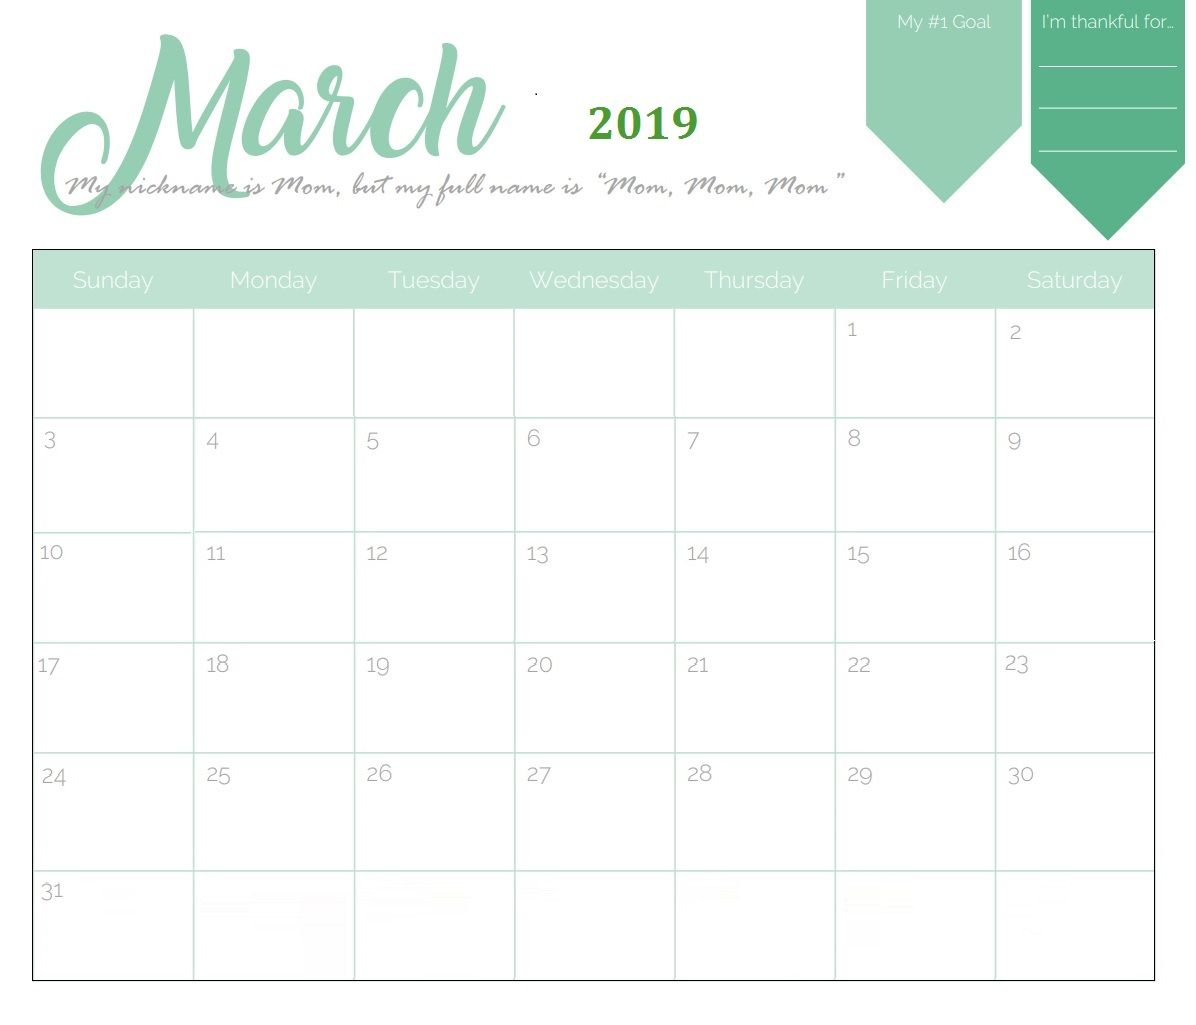 Calendar Template 2019 : Unique march calendar template in